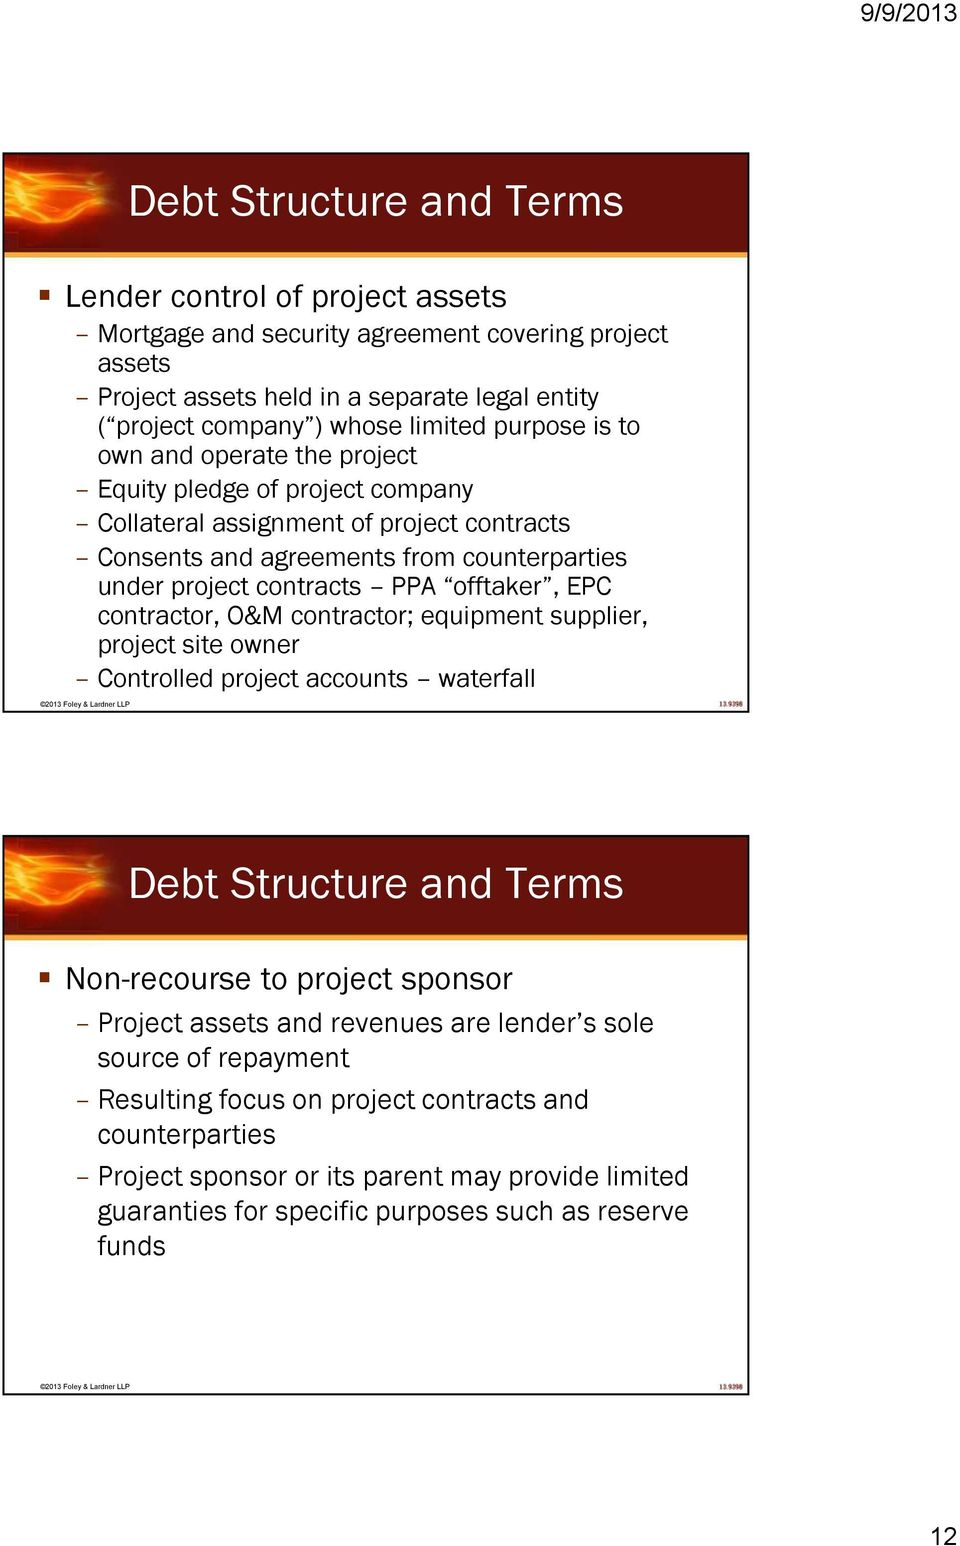 offtaker, EPC contractor, O&M contractor; equipment supplier, project site owner Controlled project accounts waterfall Debt Structure and Terms Non-recourse to project sponsor Project assets and